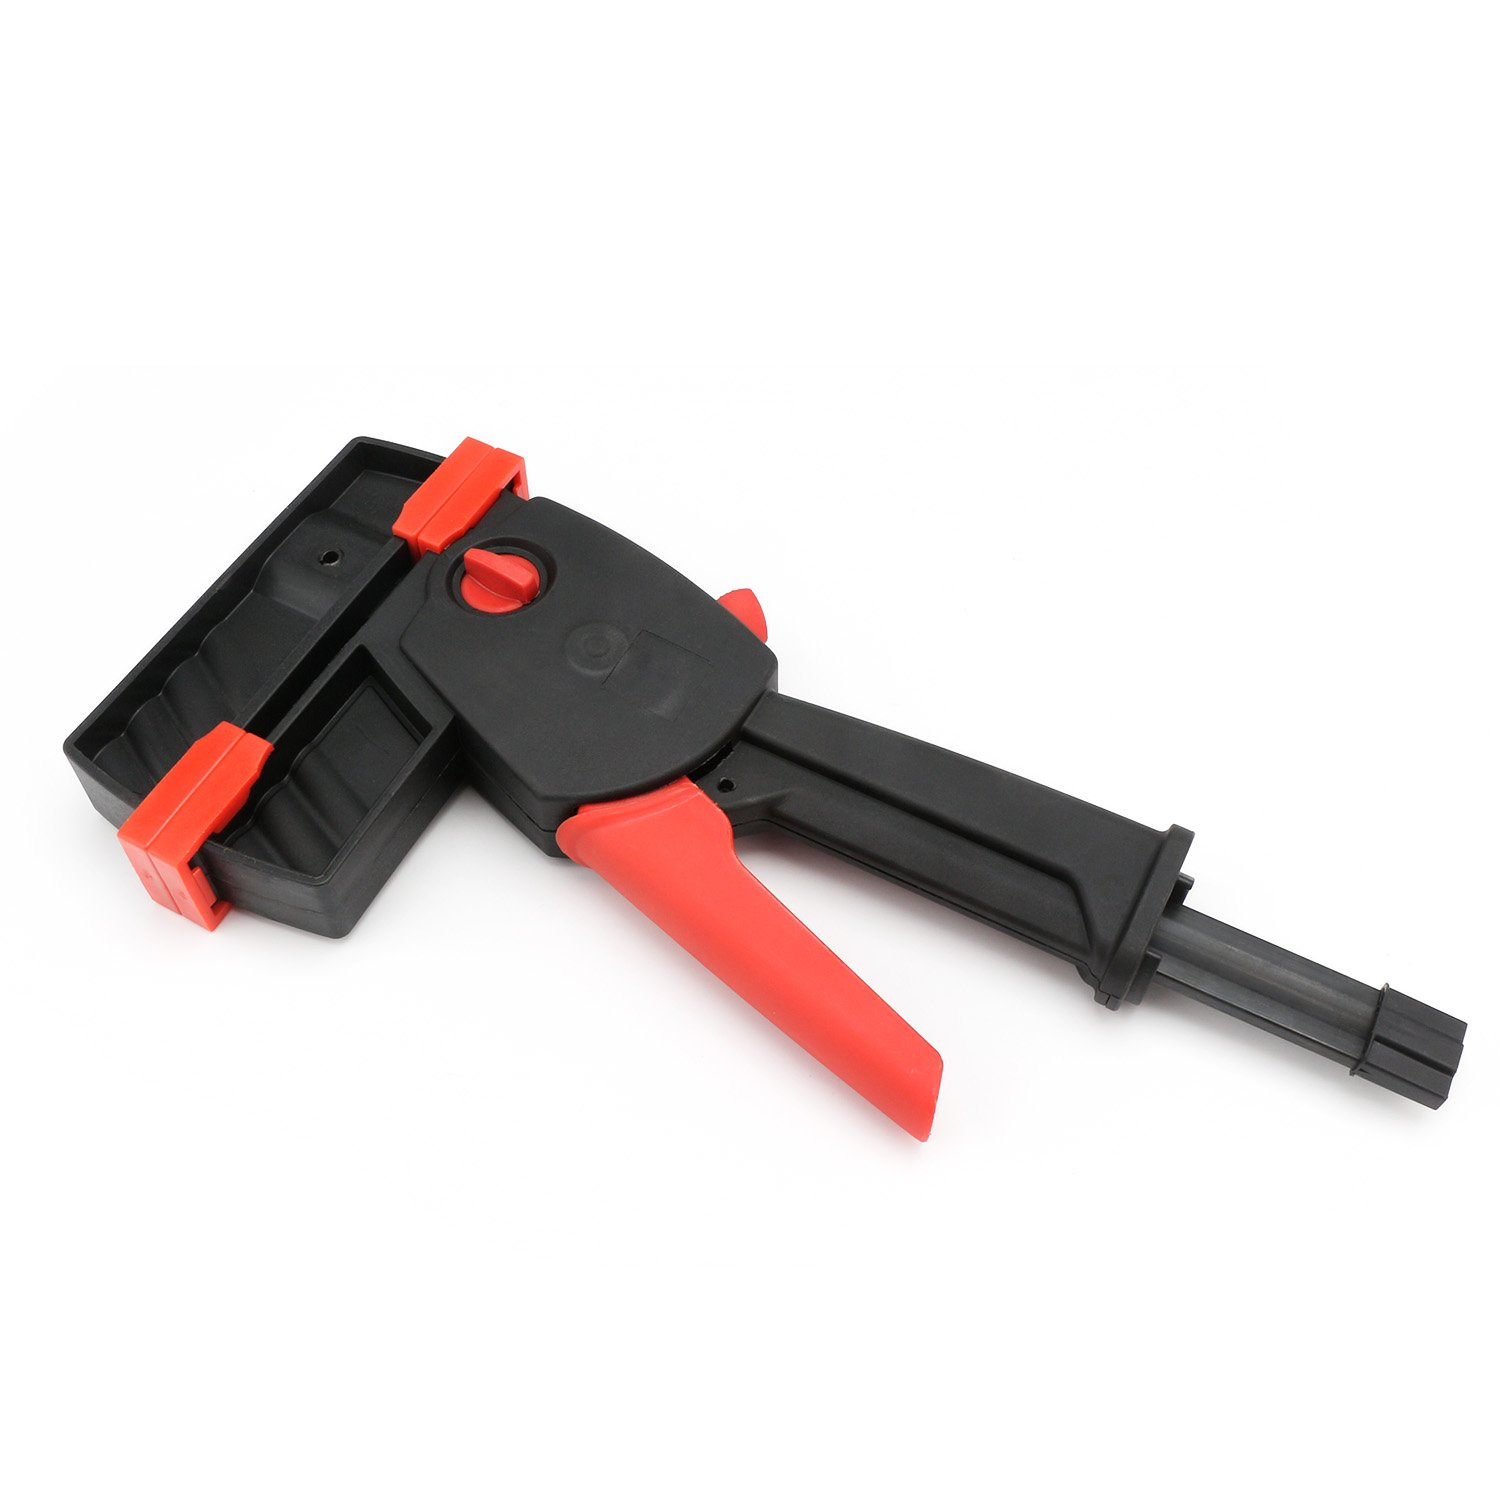 Bar Clamps: EnPoint™ Quick Grip Clamps Wood Clamps One-handed F-Clamps Bar Clamp Spreader 12.6IN 32CM Heavy Duty Clamps Perfect for Woodworking Chair Table Cabinet Gluing Assembly Work by EnPoint (Image #1)